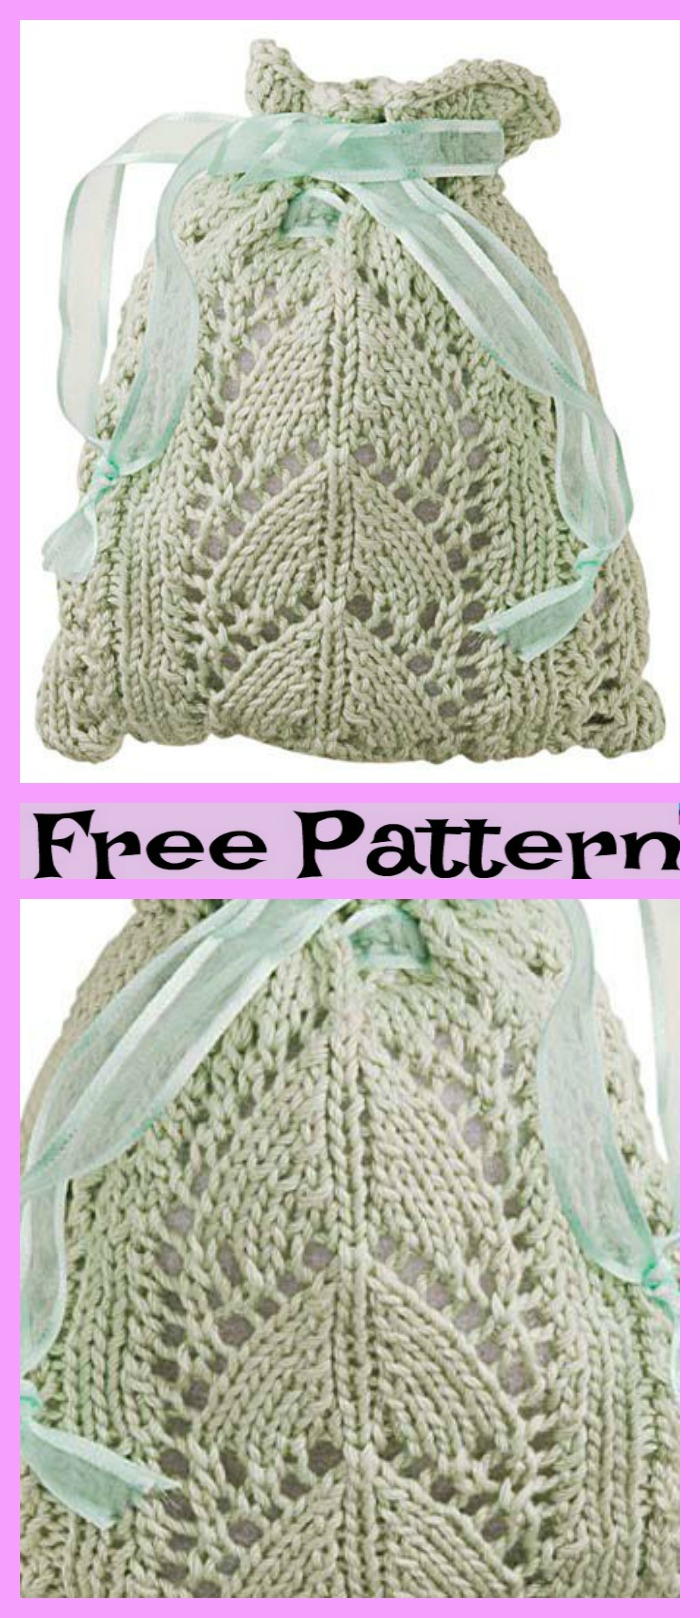 diy4ever-Pretty Knitting Leaf Purse - Free Pattern